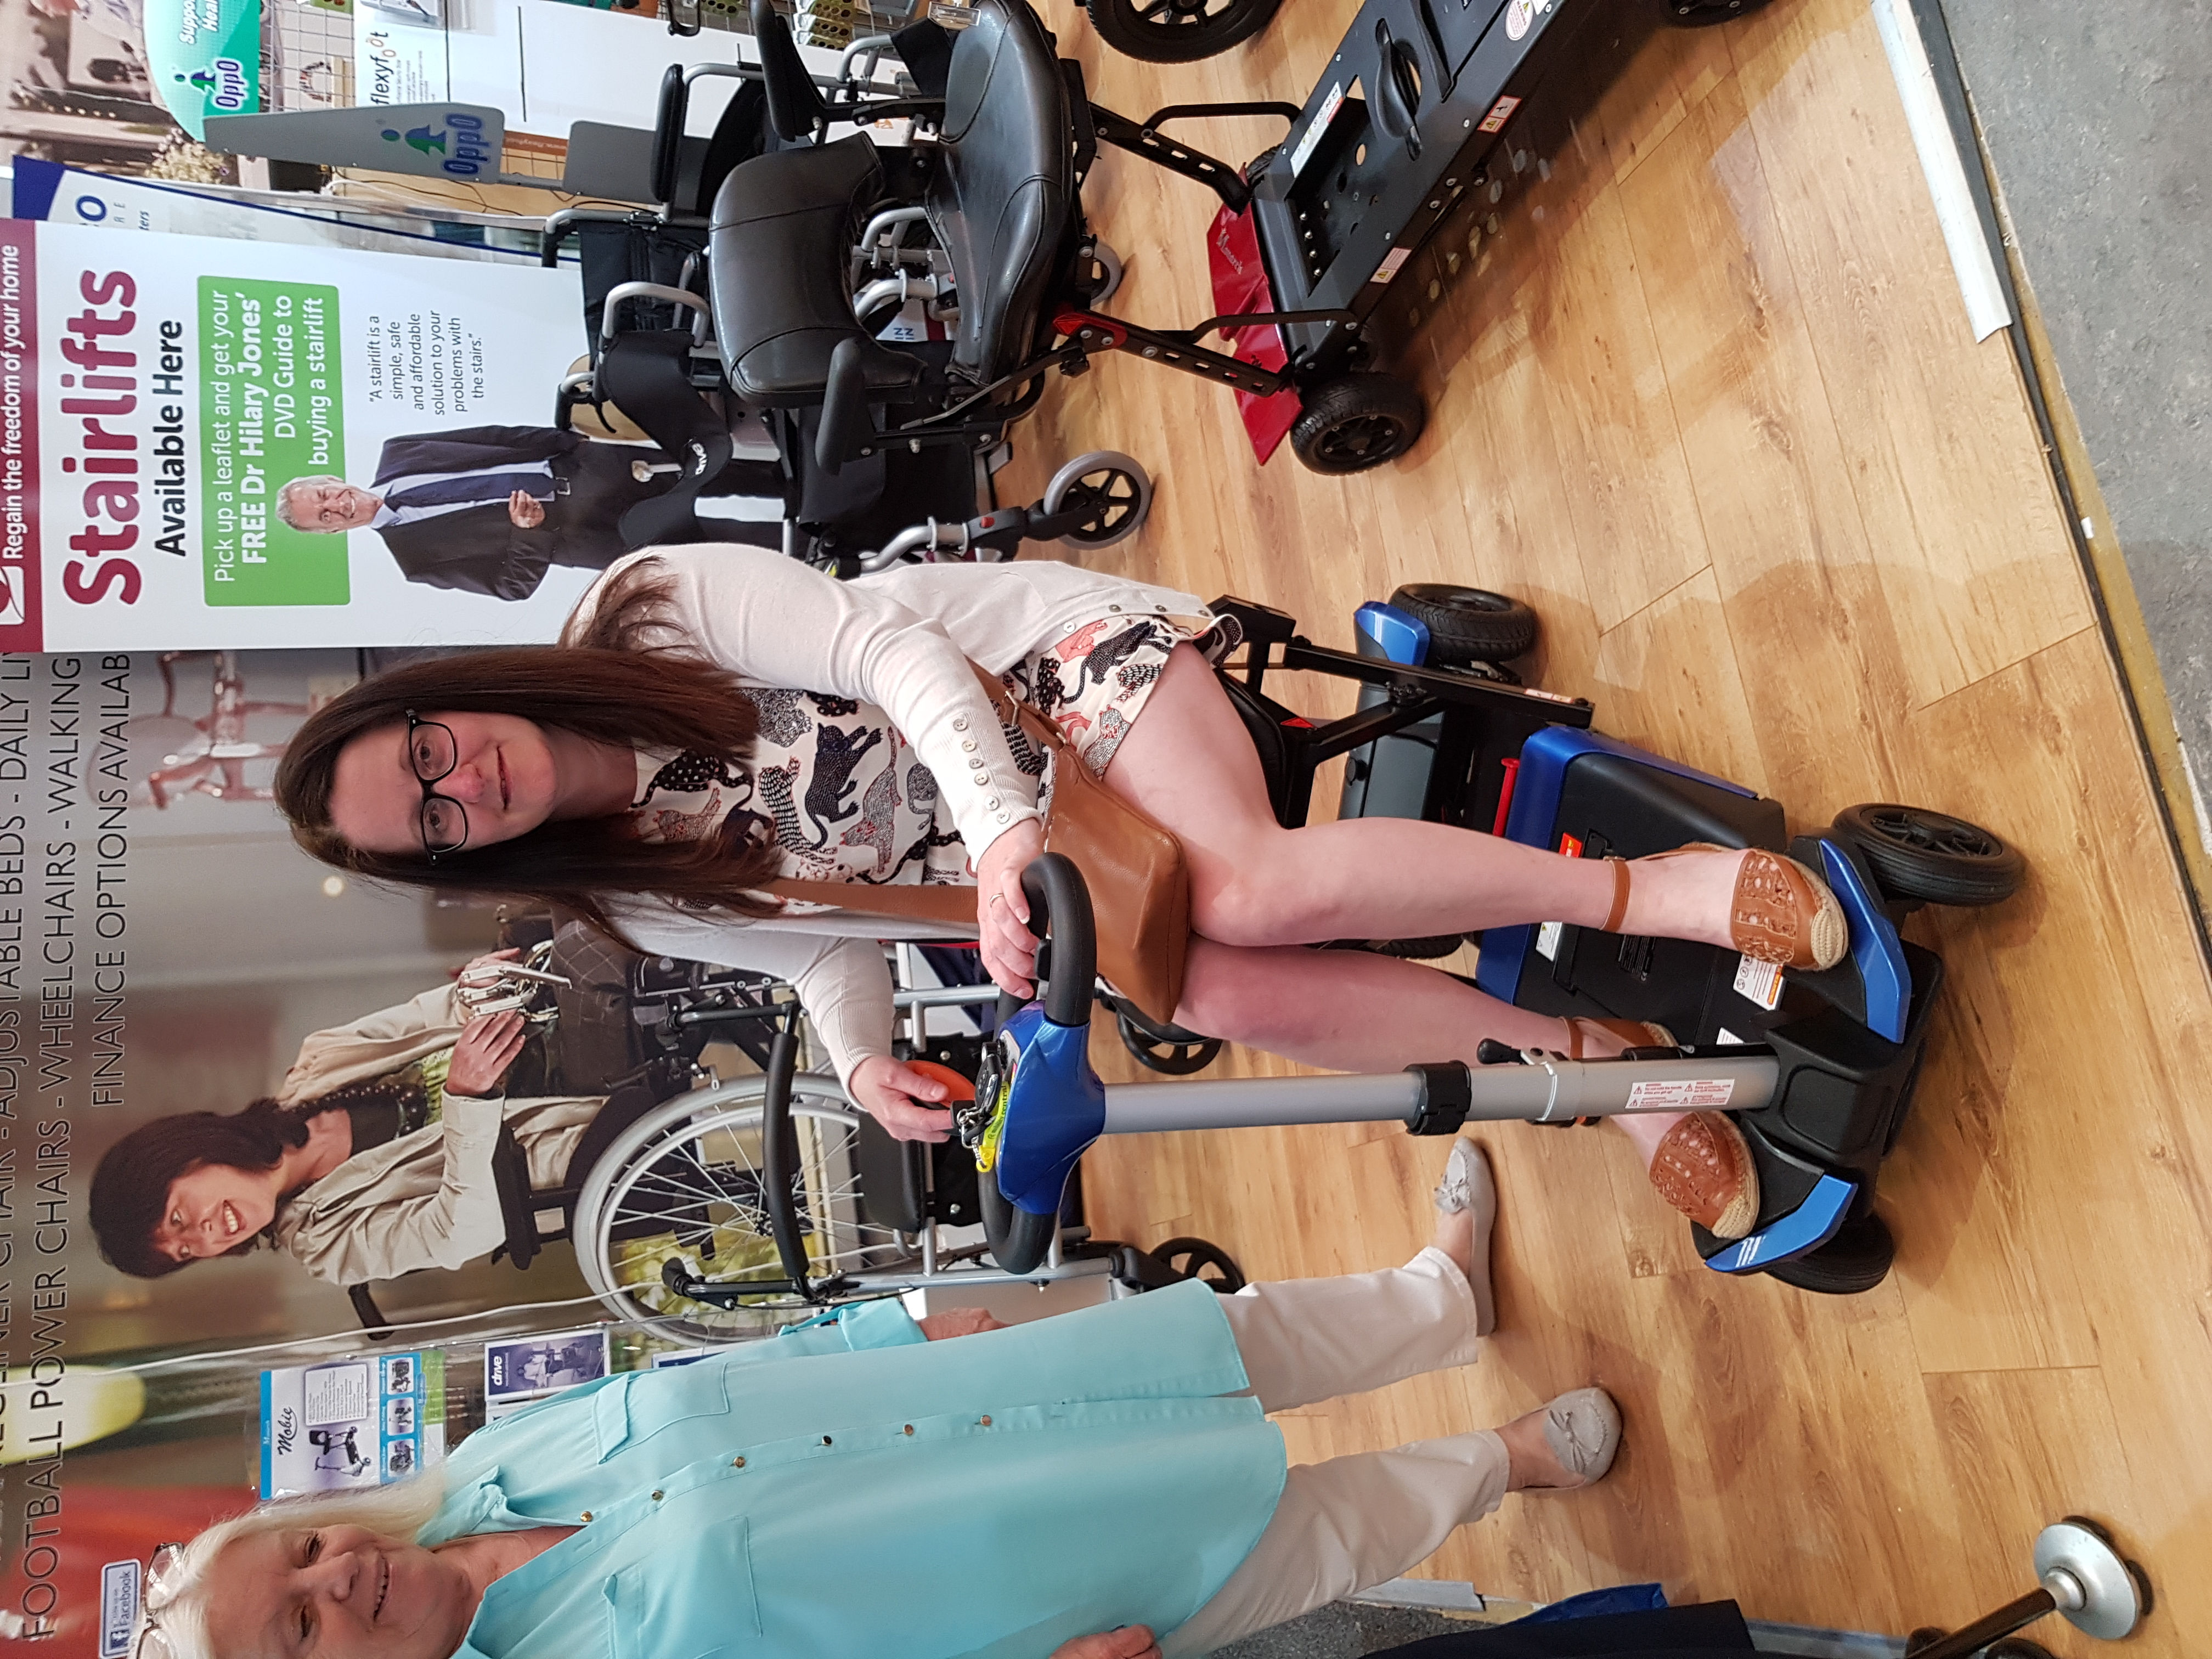 Raising For A Mobility Scooter - Sarah Watterson